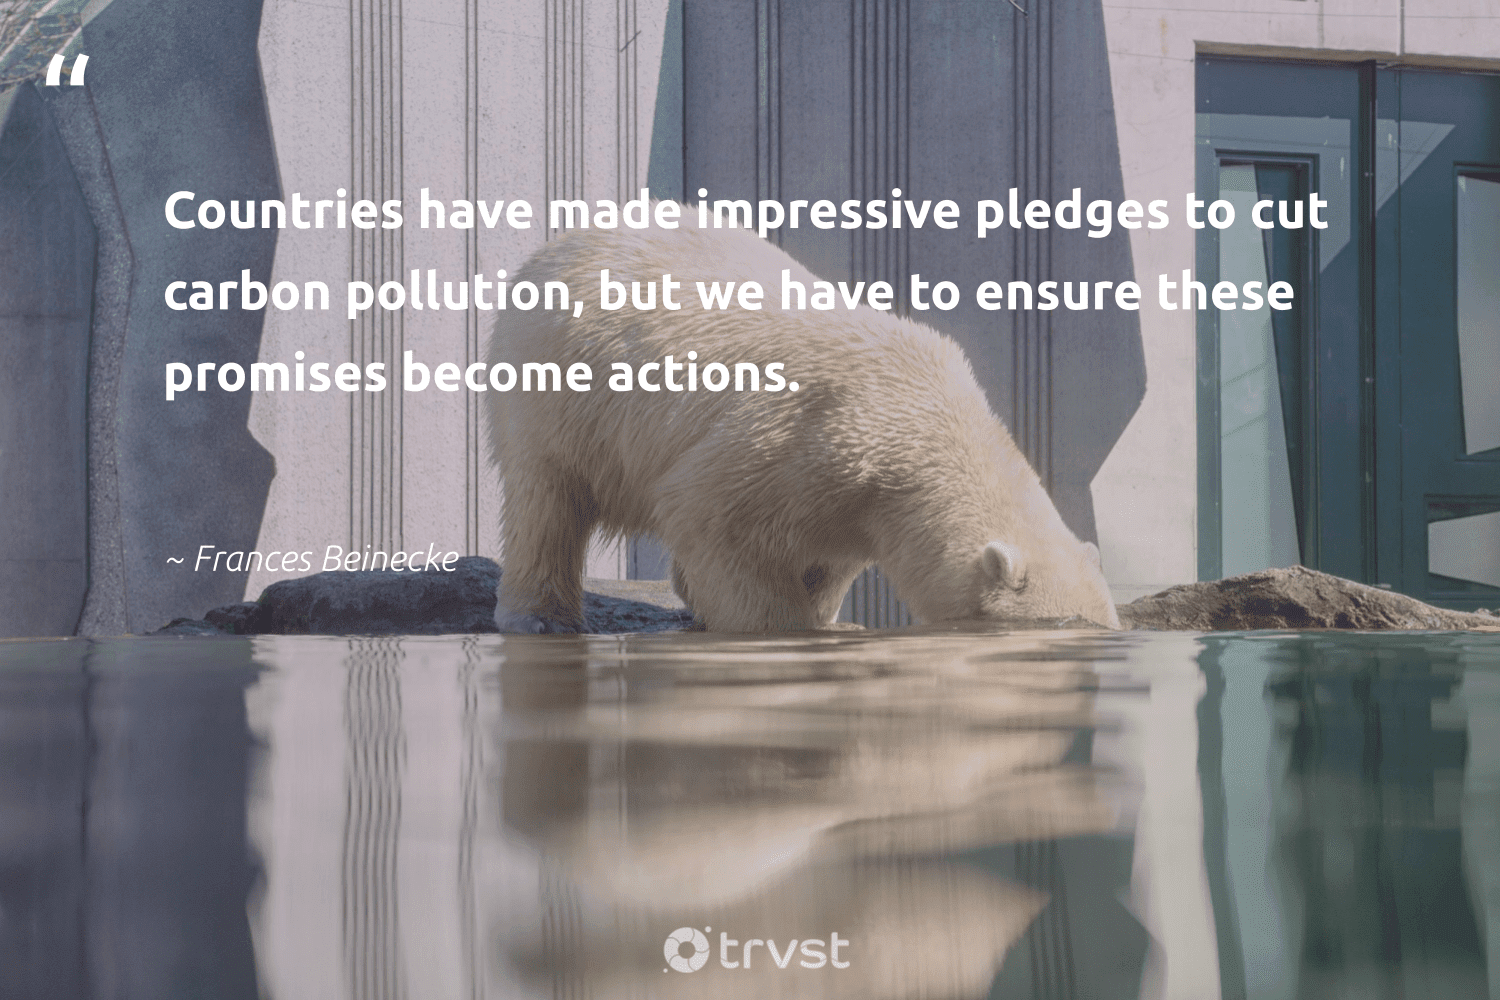 """""""Countries have made impressive pledges to cut carbon pollution, but we have to ensure these promises become actions.""""  - Frances Beinecke #trvst #quotes #carbon #pollution #spill #ecoconscious #giveback #dogood #toxic #climatechangeisreal #gogreen #changetheworld"""